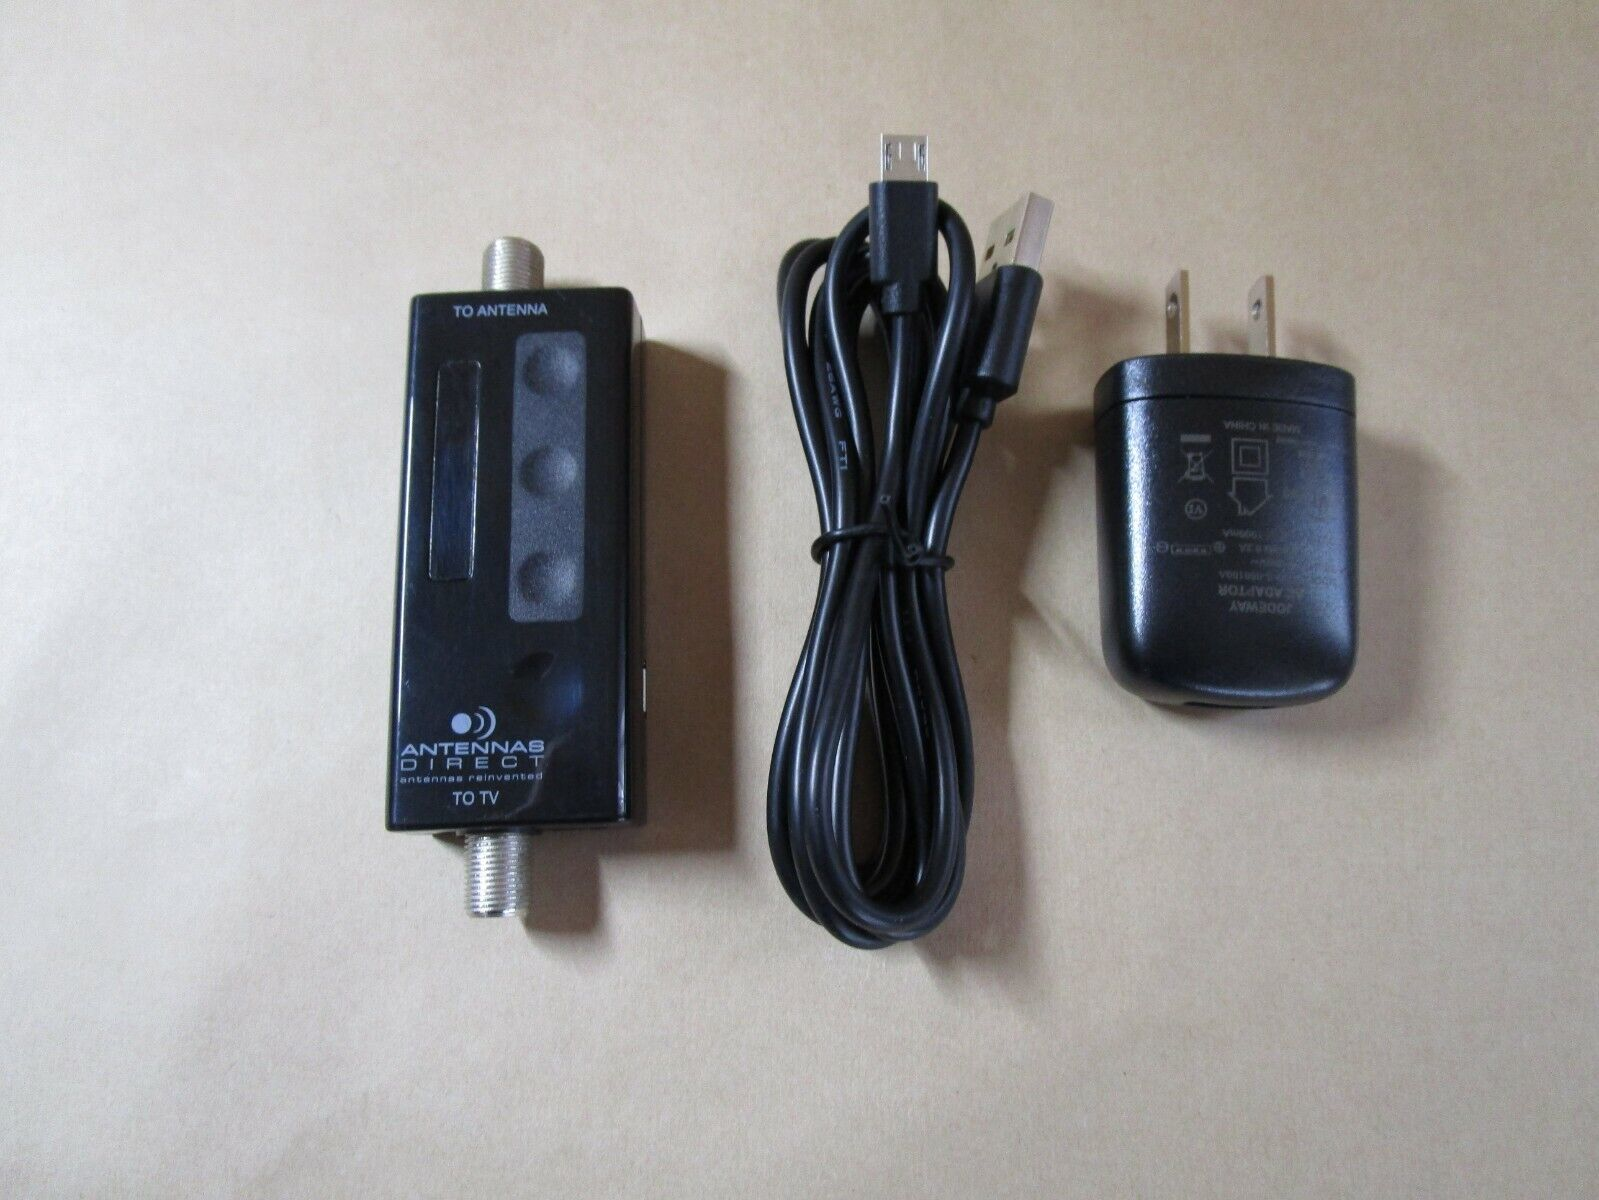 Antennas Direct ClearStream replacement Amplifier with power supply . Available Now for 12.00